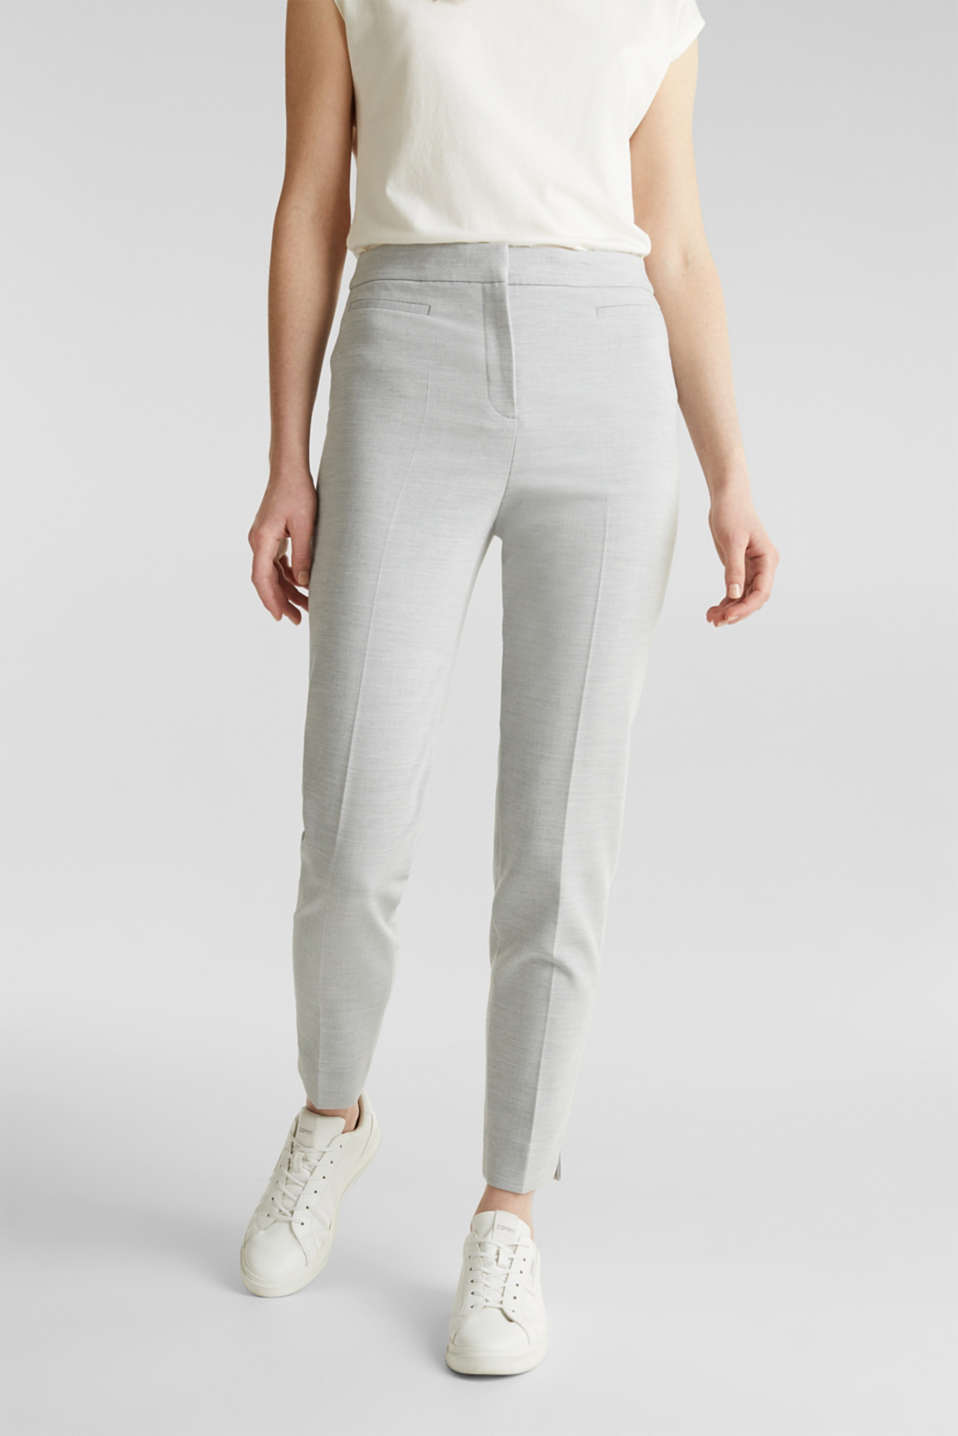 JERSEY mix + match trousers, LIGHT GREY 5, detail image number 5